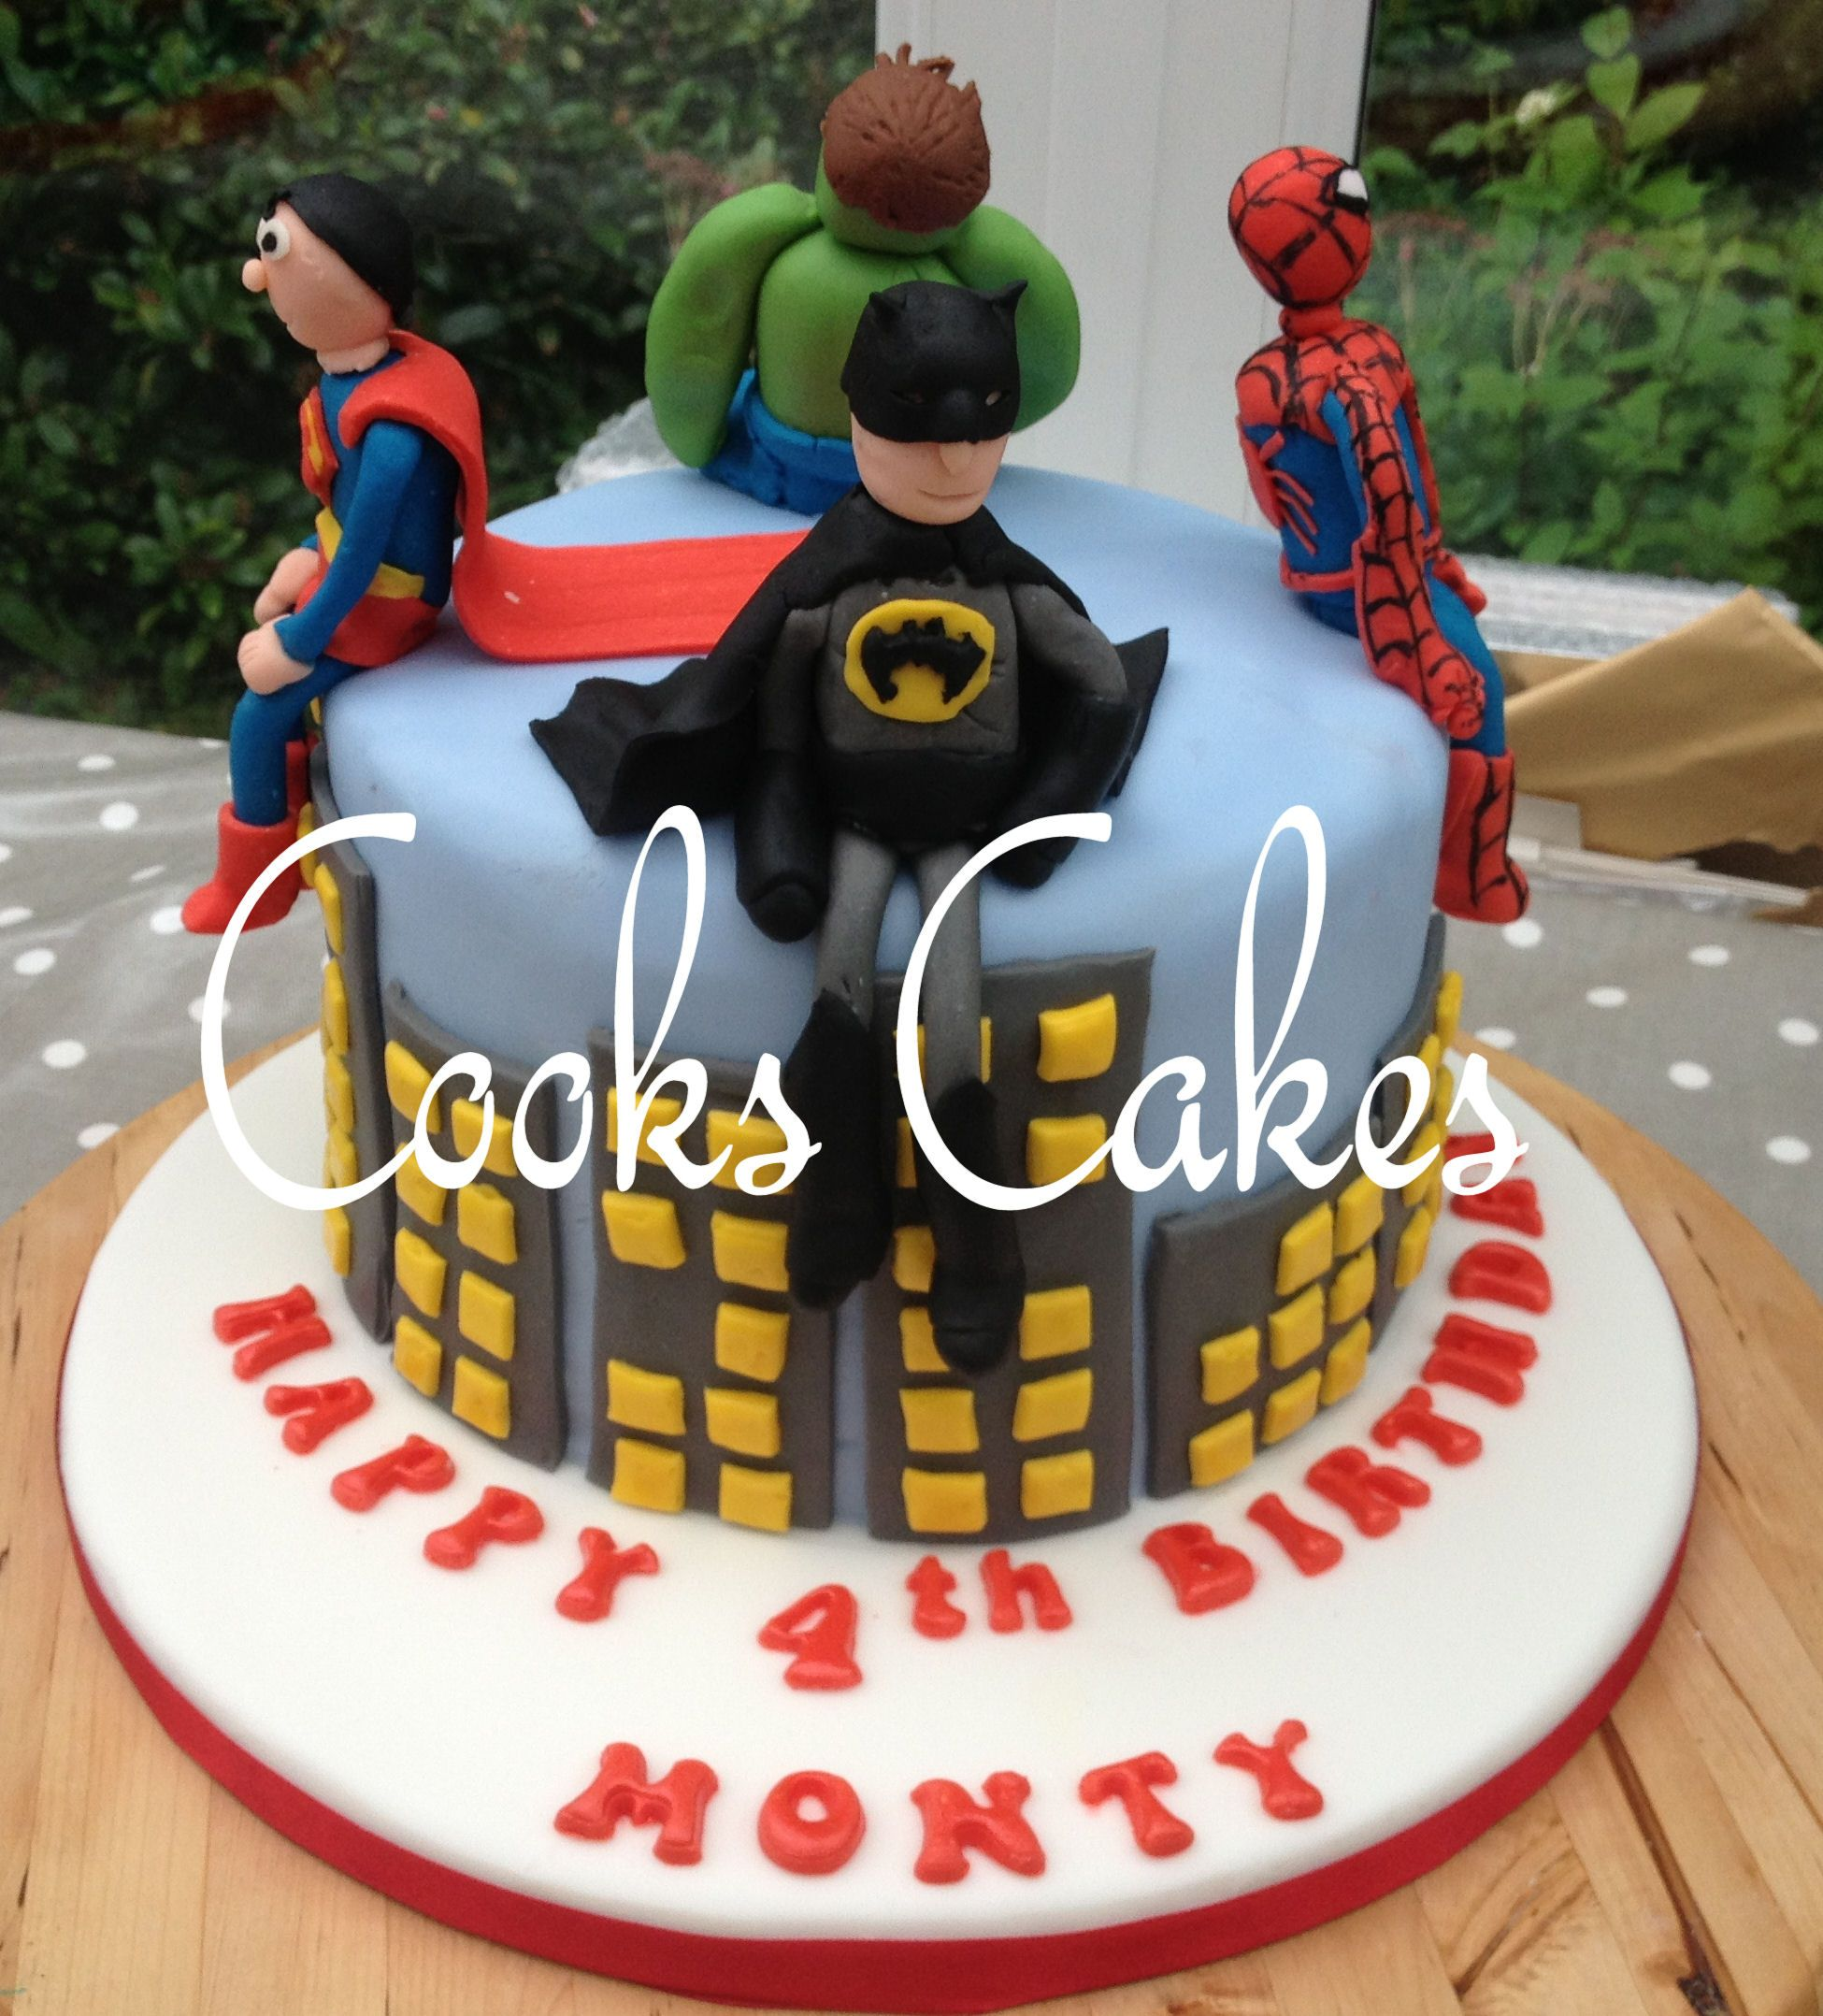 Fabulous Birthday Cake For A 4 Year Old Boy Superheros Batman Spiderman Personalised Birthday Cards Veneteletsinfo